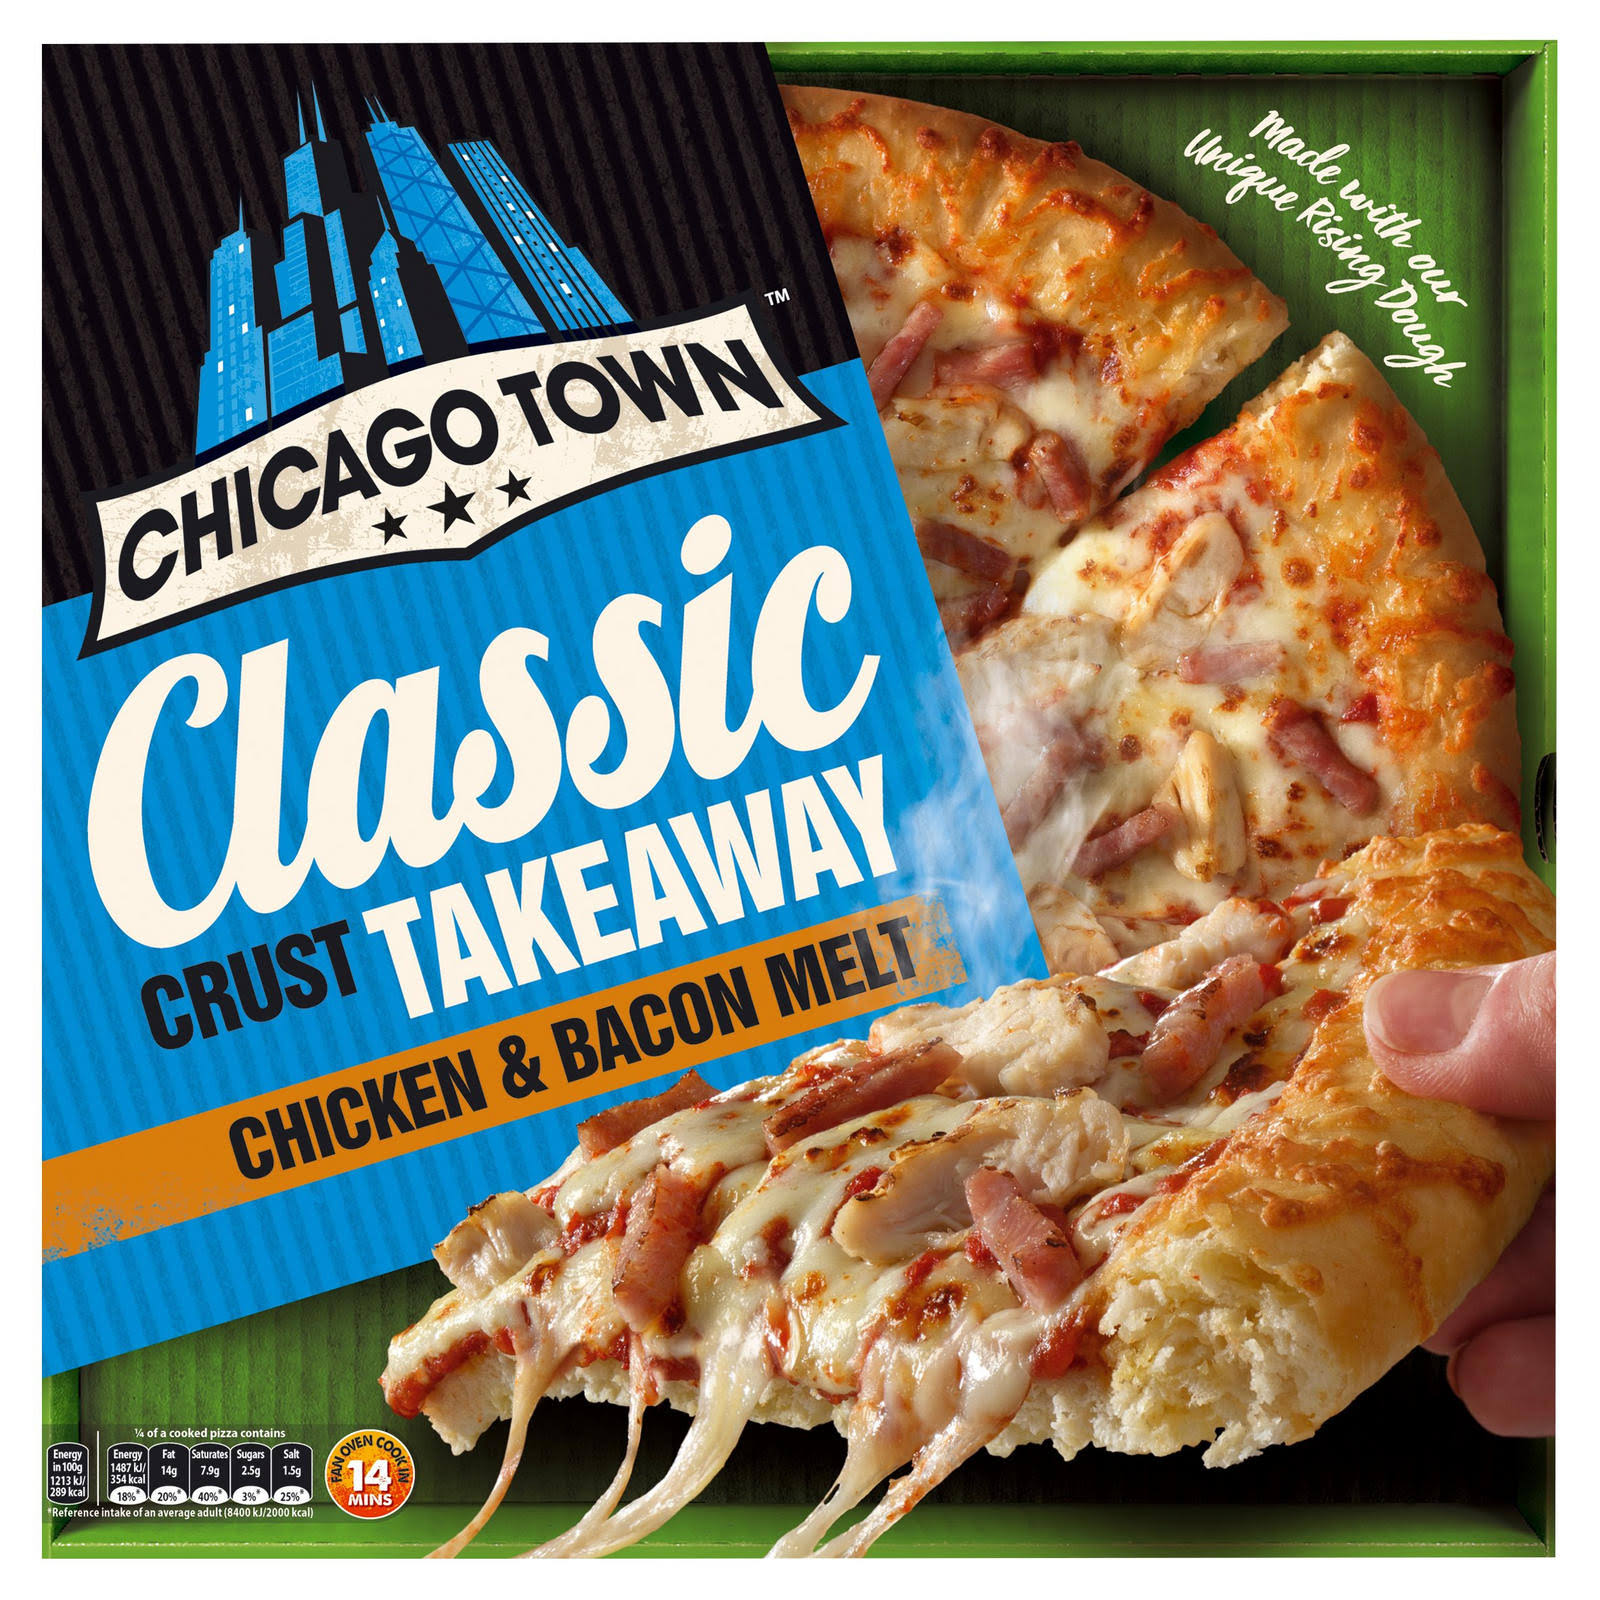 Chicago Town Takeaway Large Classic Pizza - Chicken and Bacon, 495g